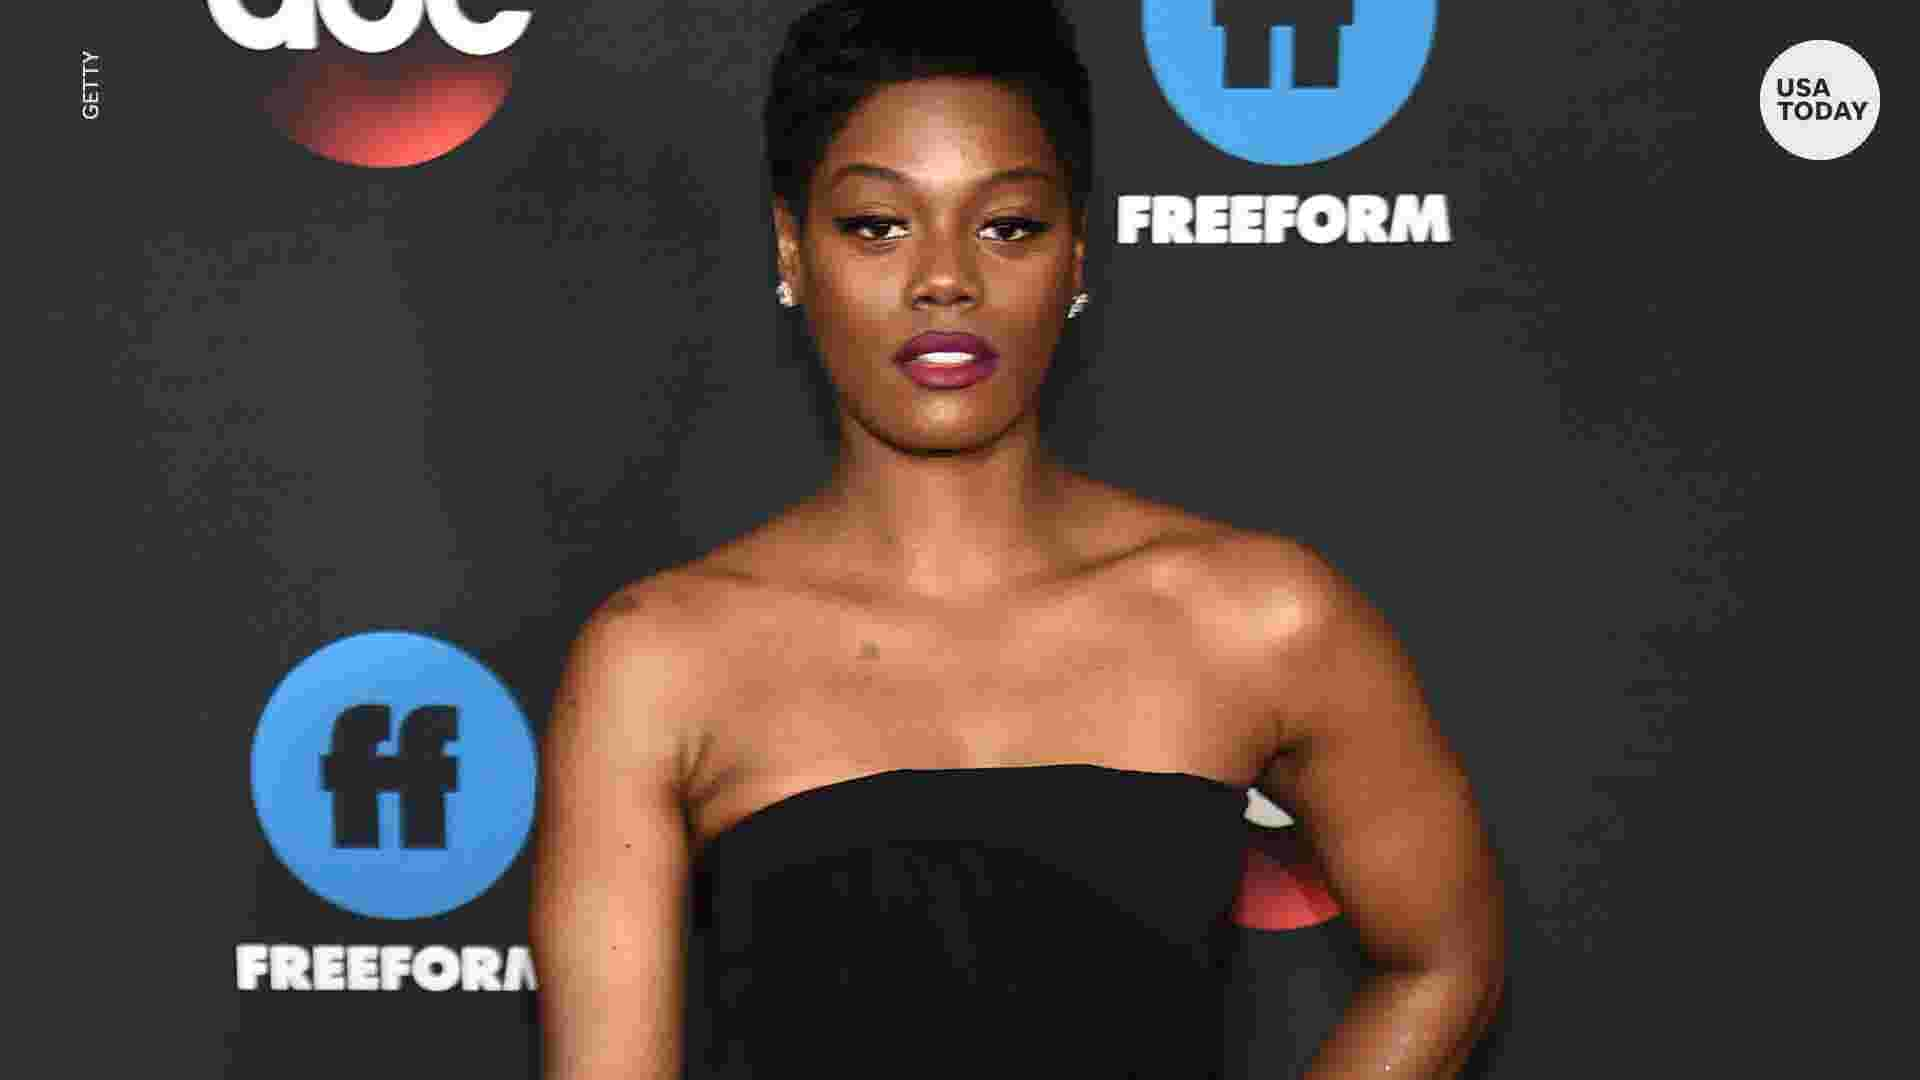 Afton Williamson names 'The Rookie' cast, crew accused of misconduct